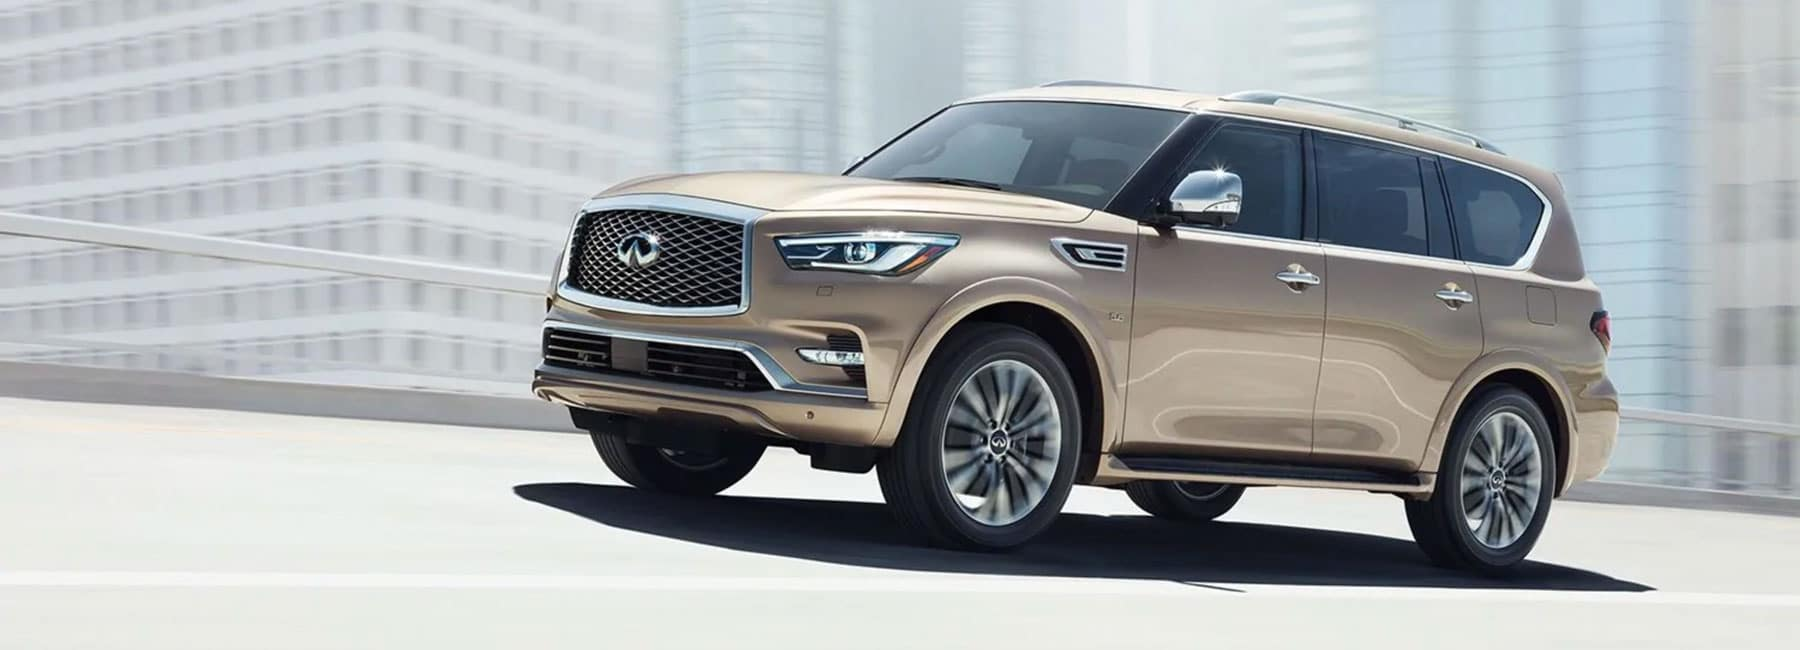 2020 INFINITY QX80 at Germain INFINITI of Easton